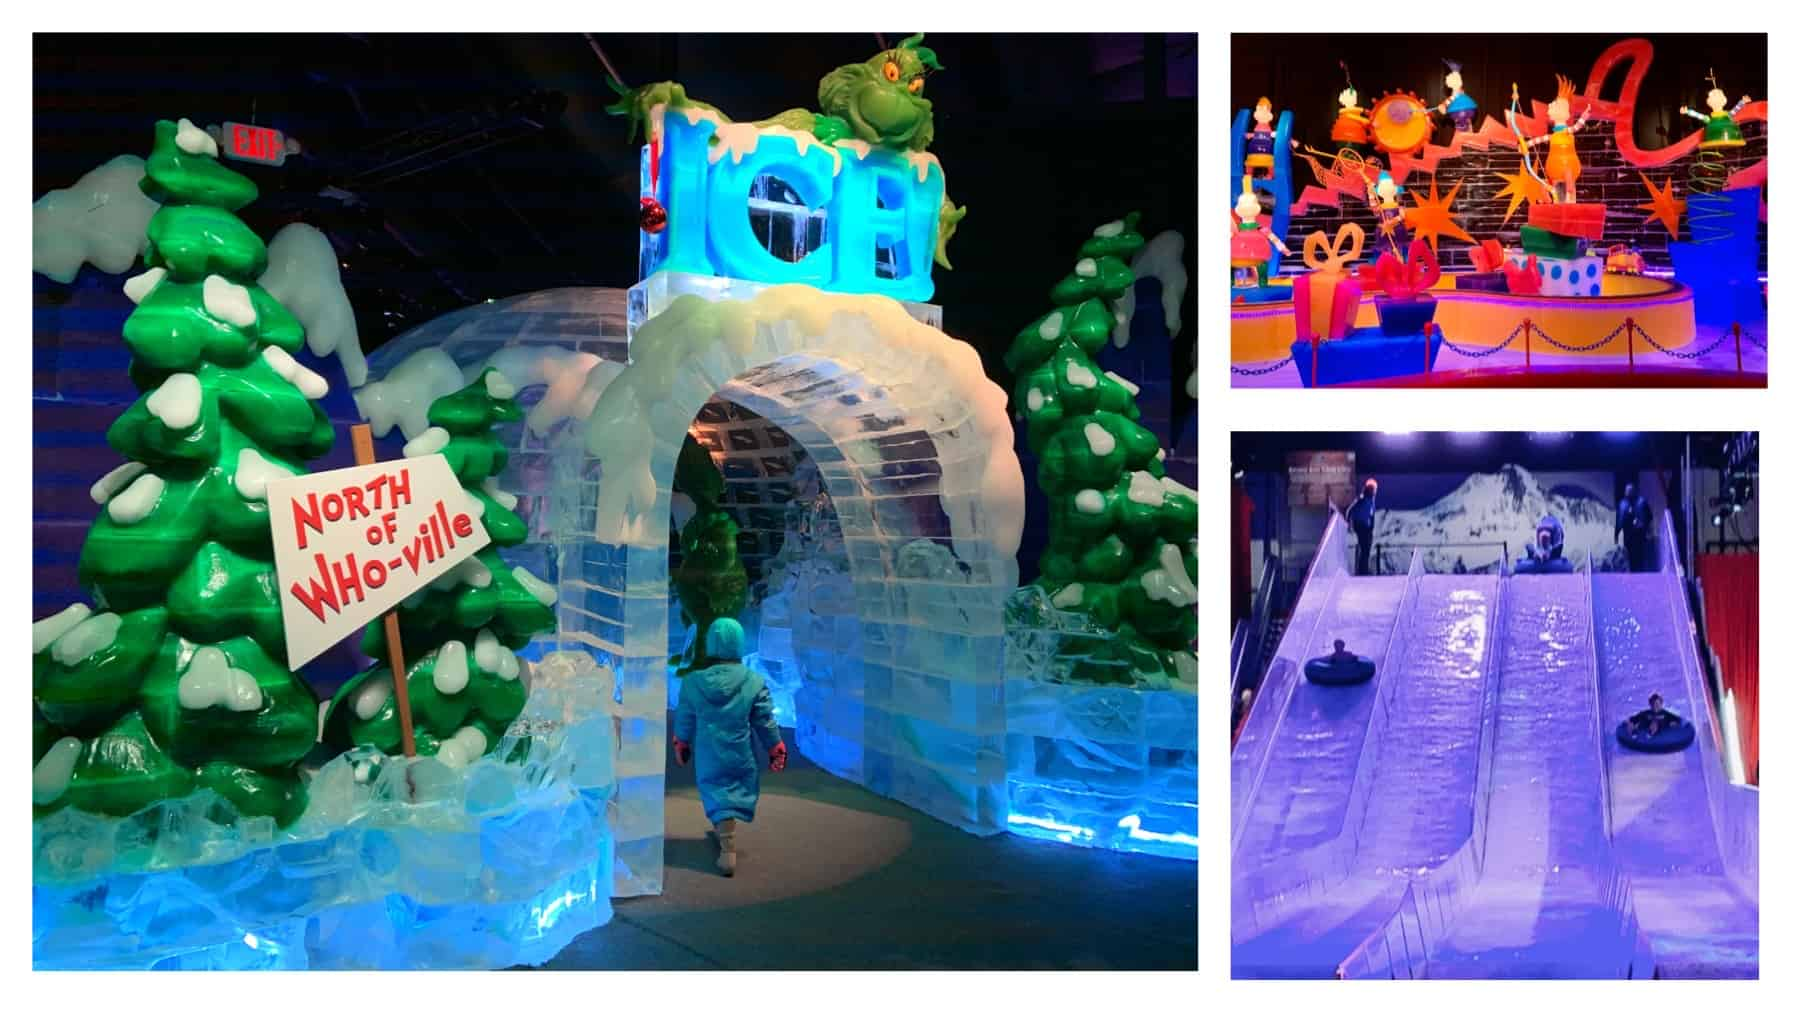 Entrance to ICE! Featuring the Grinch at Gaylord National Resort